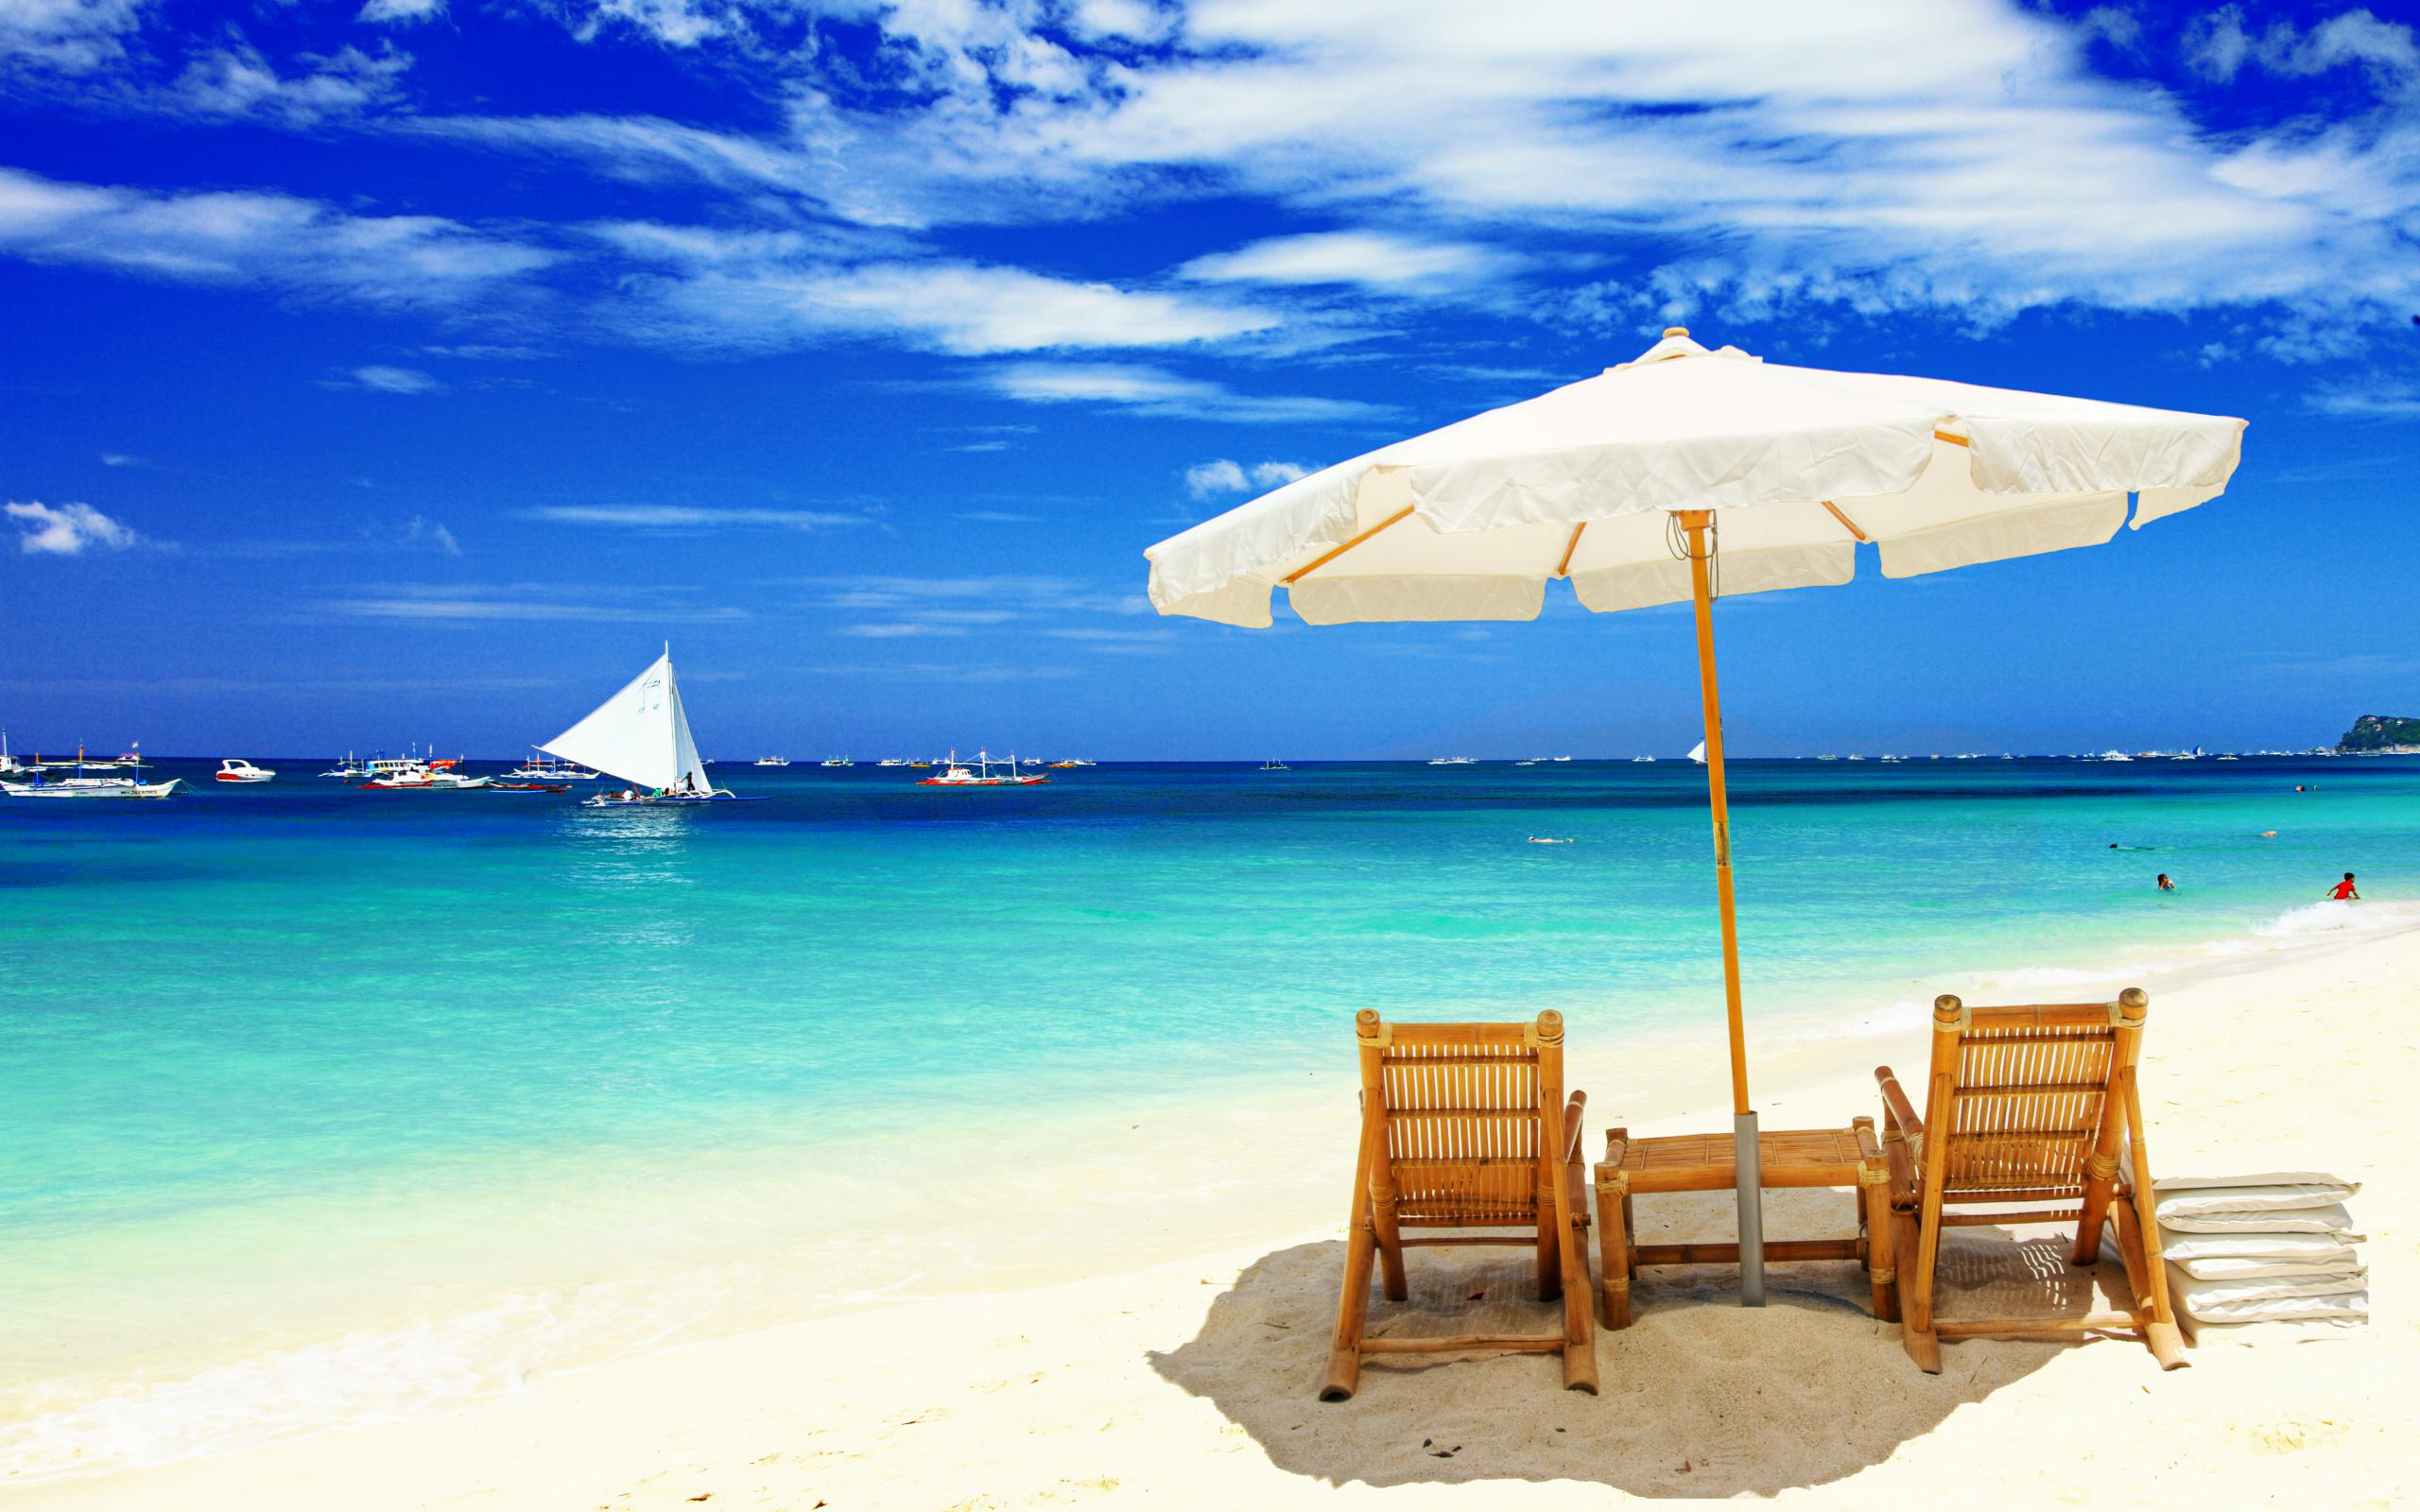 Beach Holiday in Tropical Country